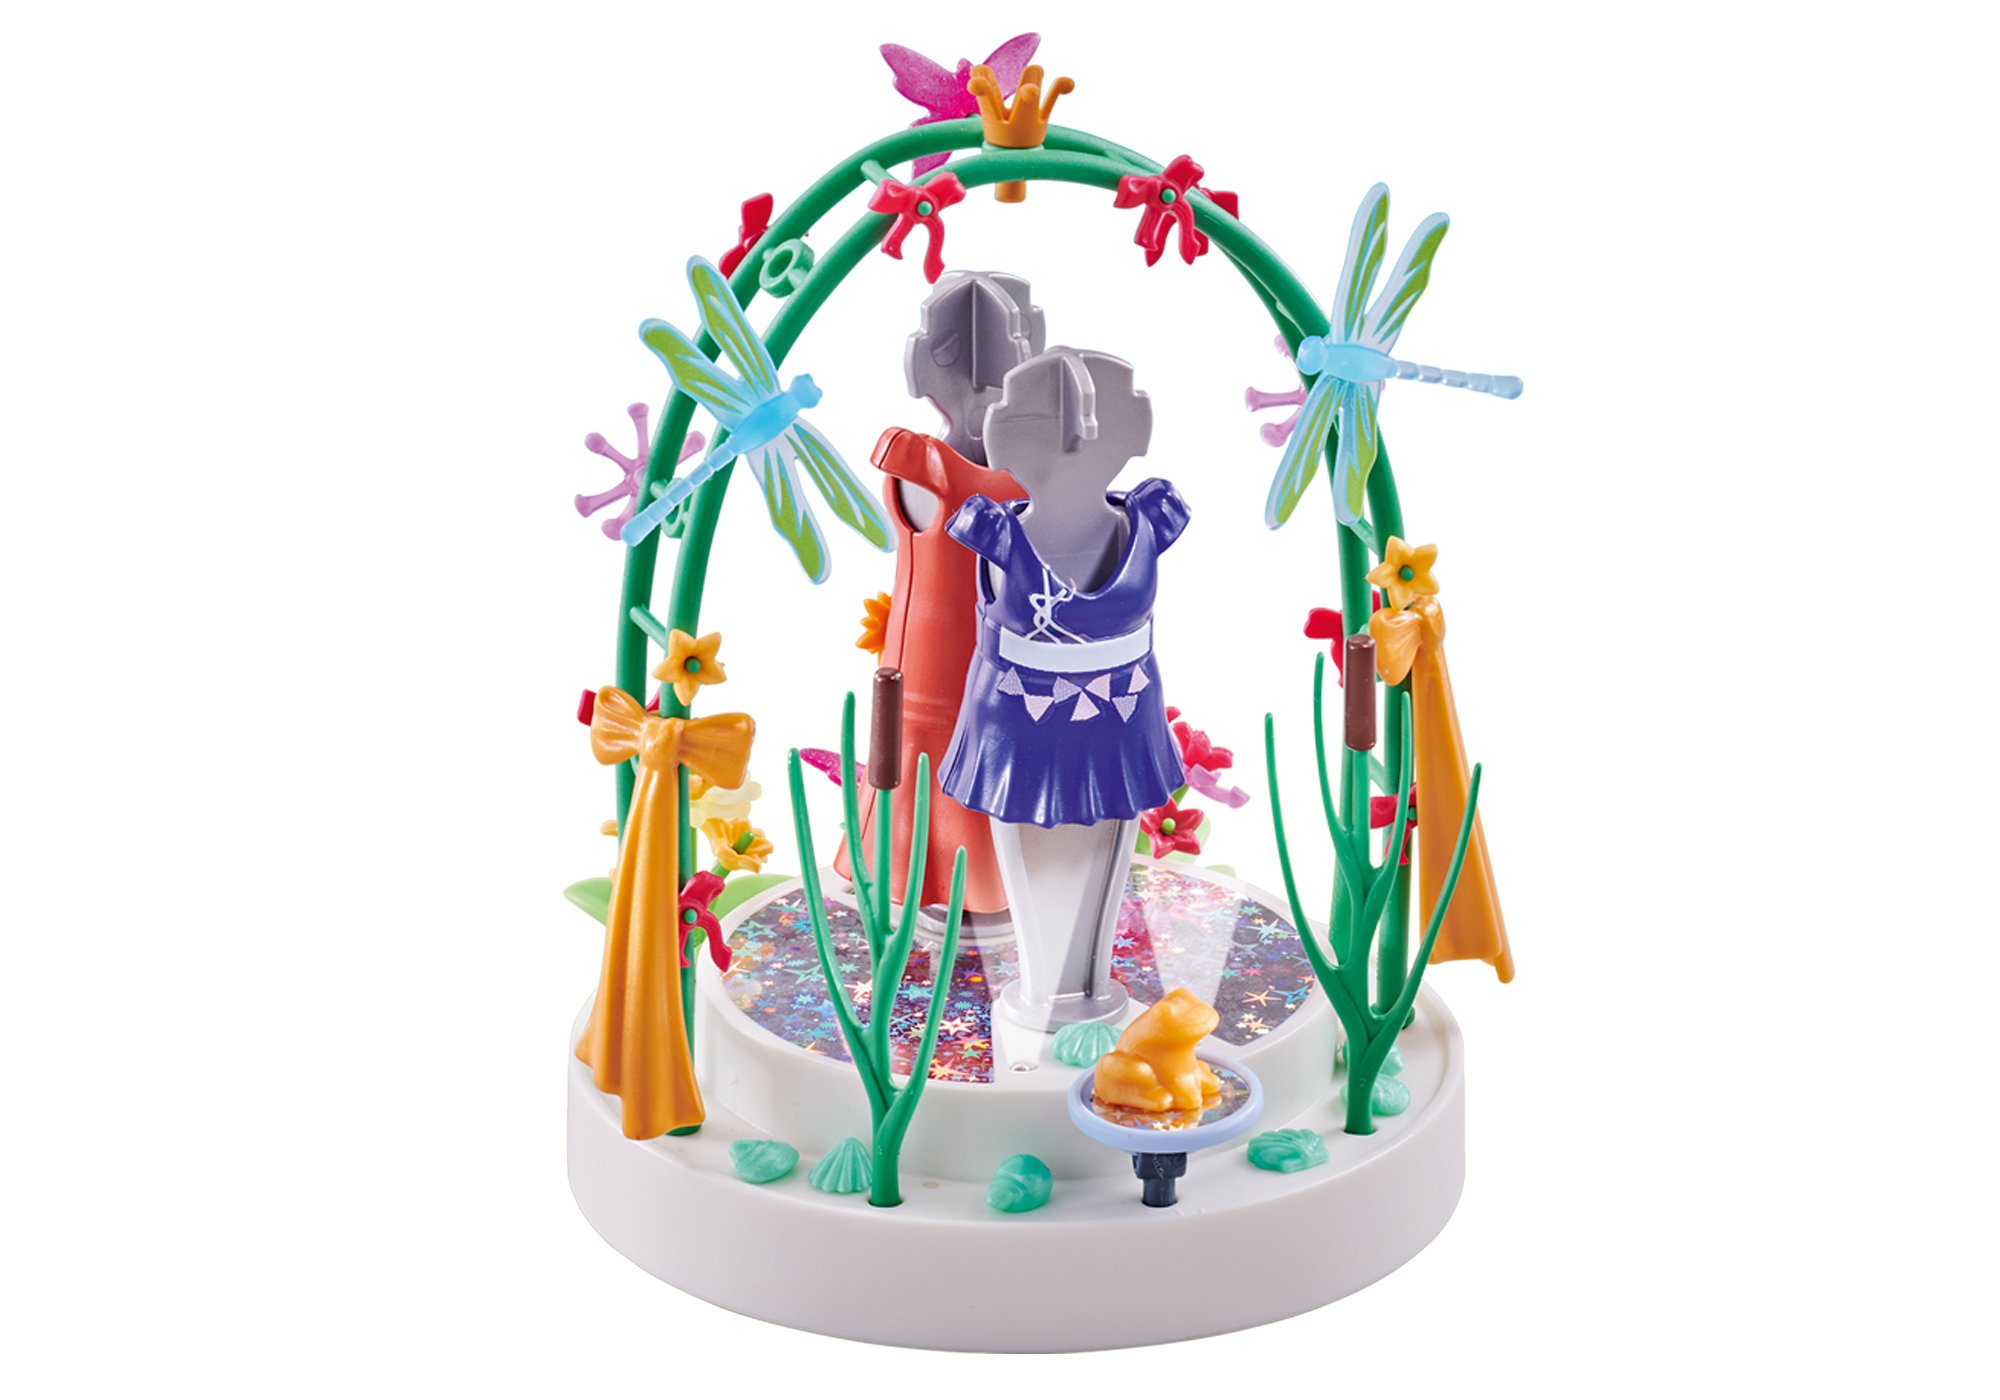 http://media.playmobil.com/i/playmobil/9821_product_detail/LED Store Display with Dresses